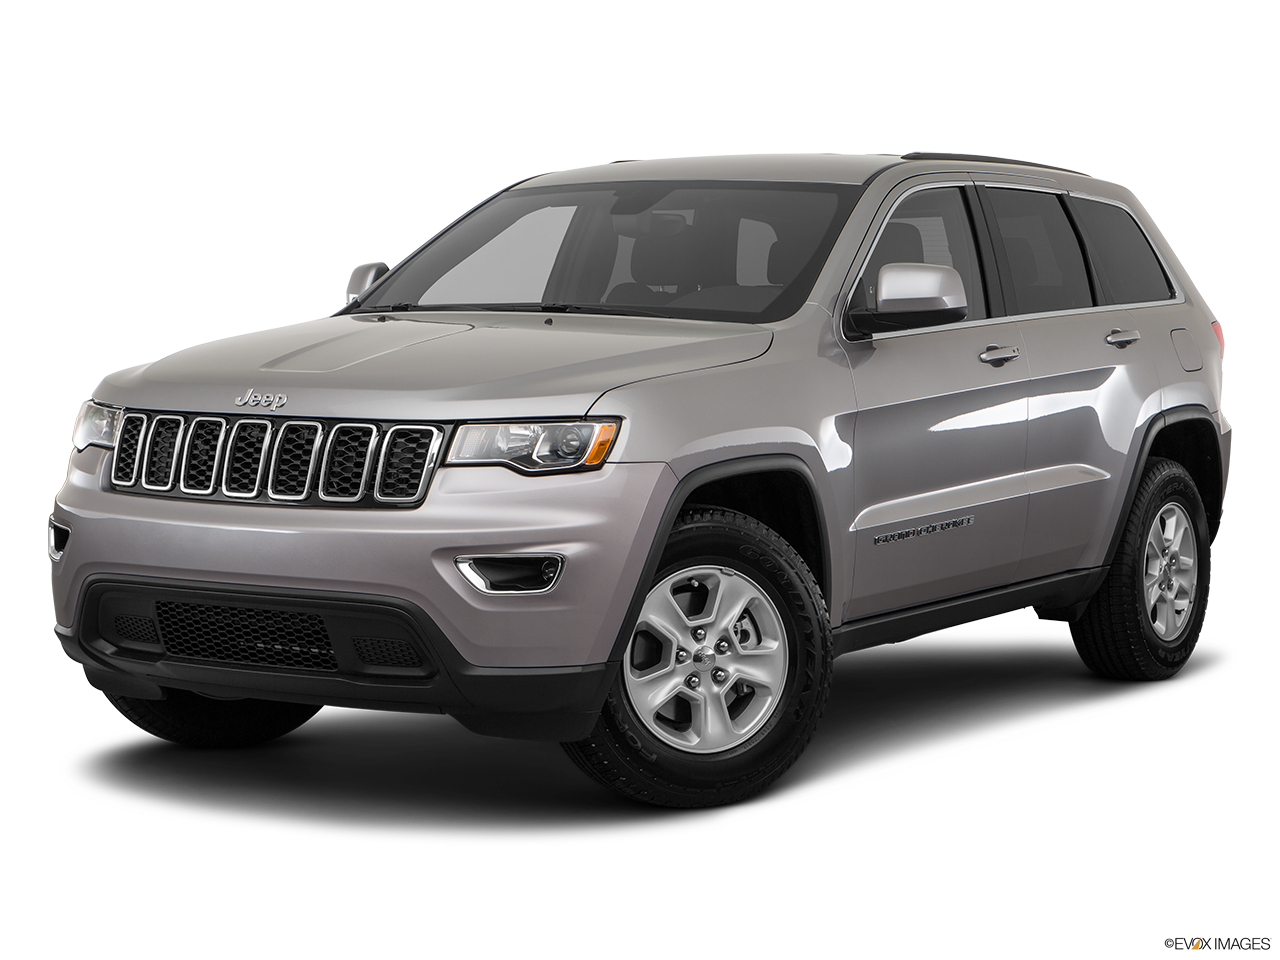 Test Drive A 2017 Jeep Grand Cherokee at Carl Burger Dodge Chrysler Jeep Ram World in La Mesa